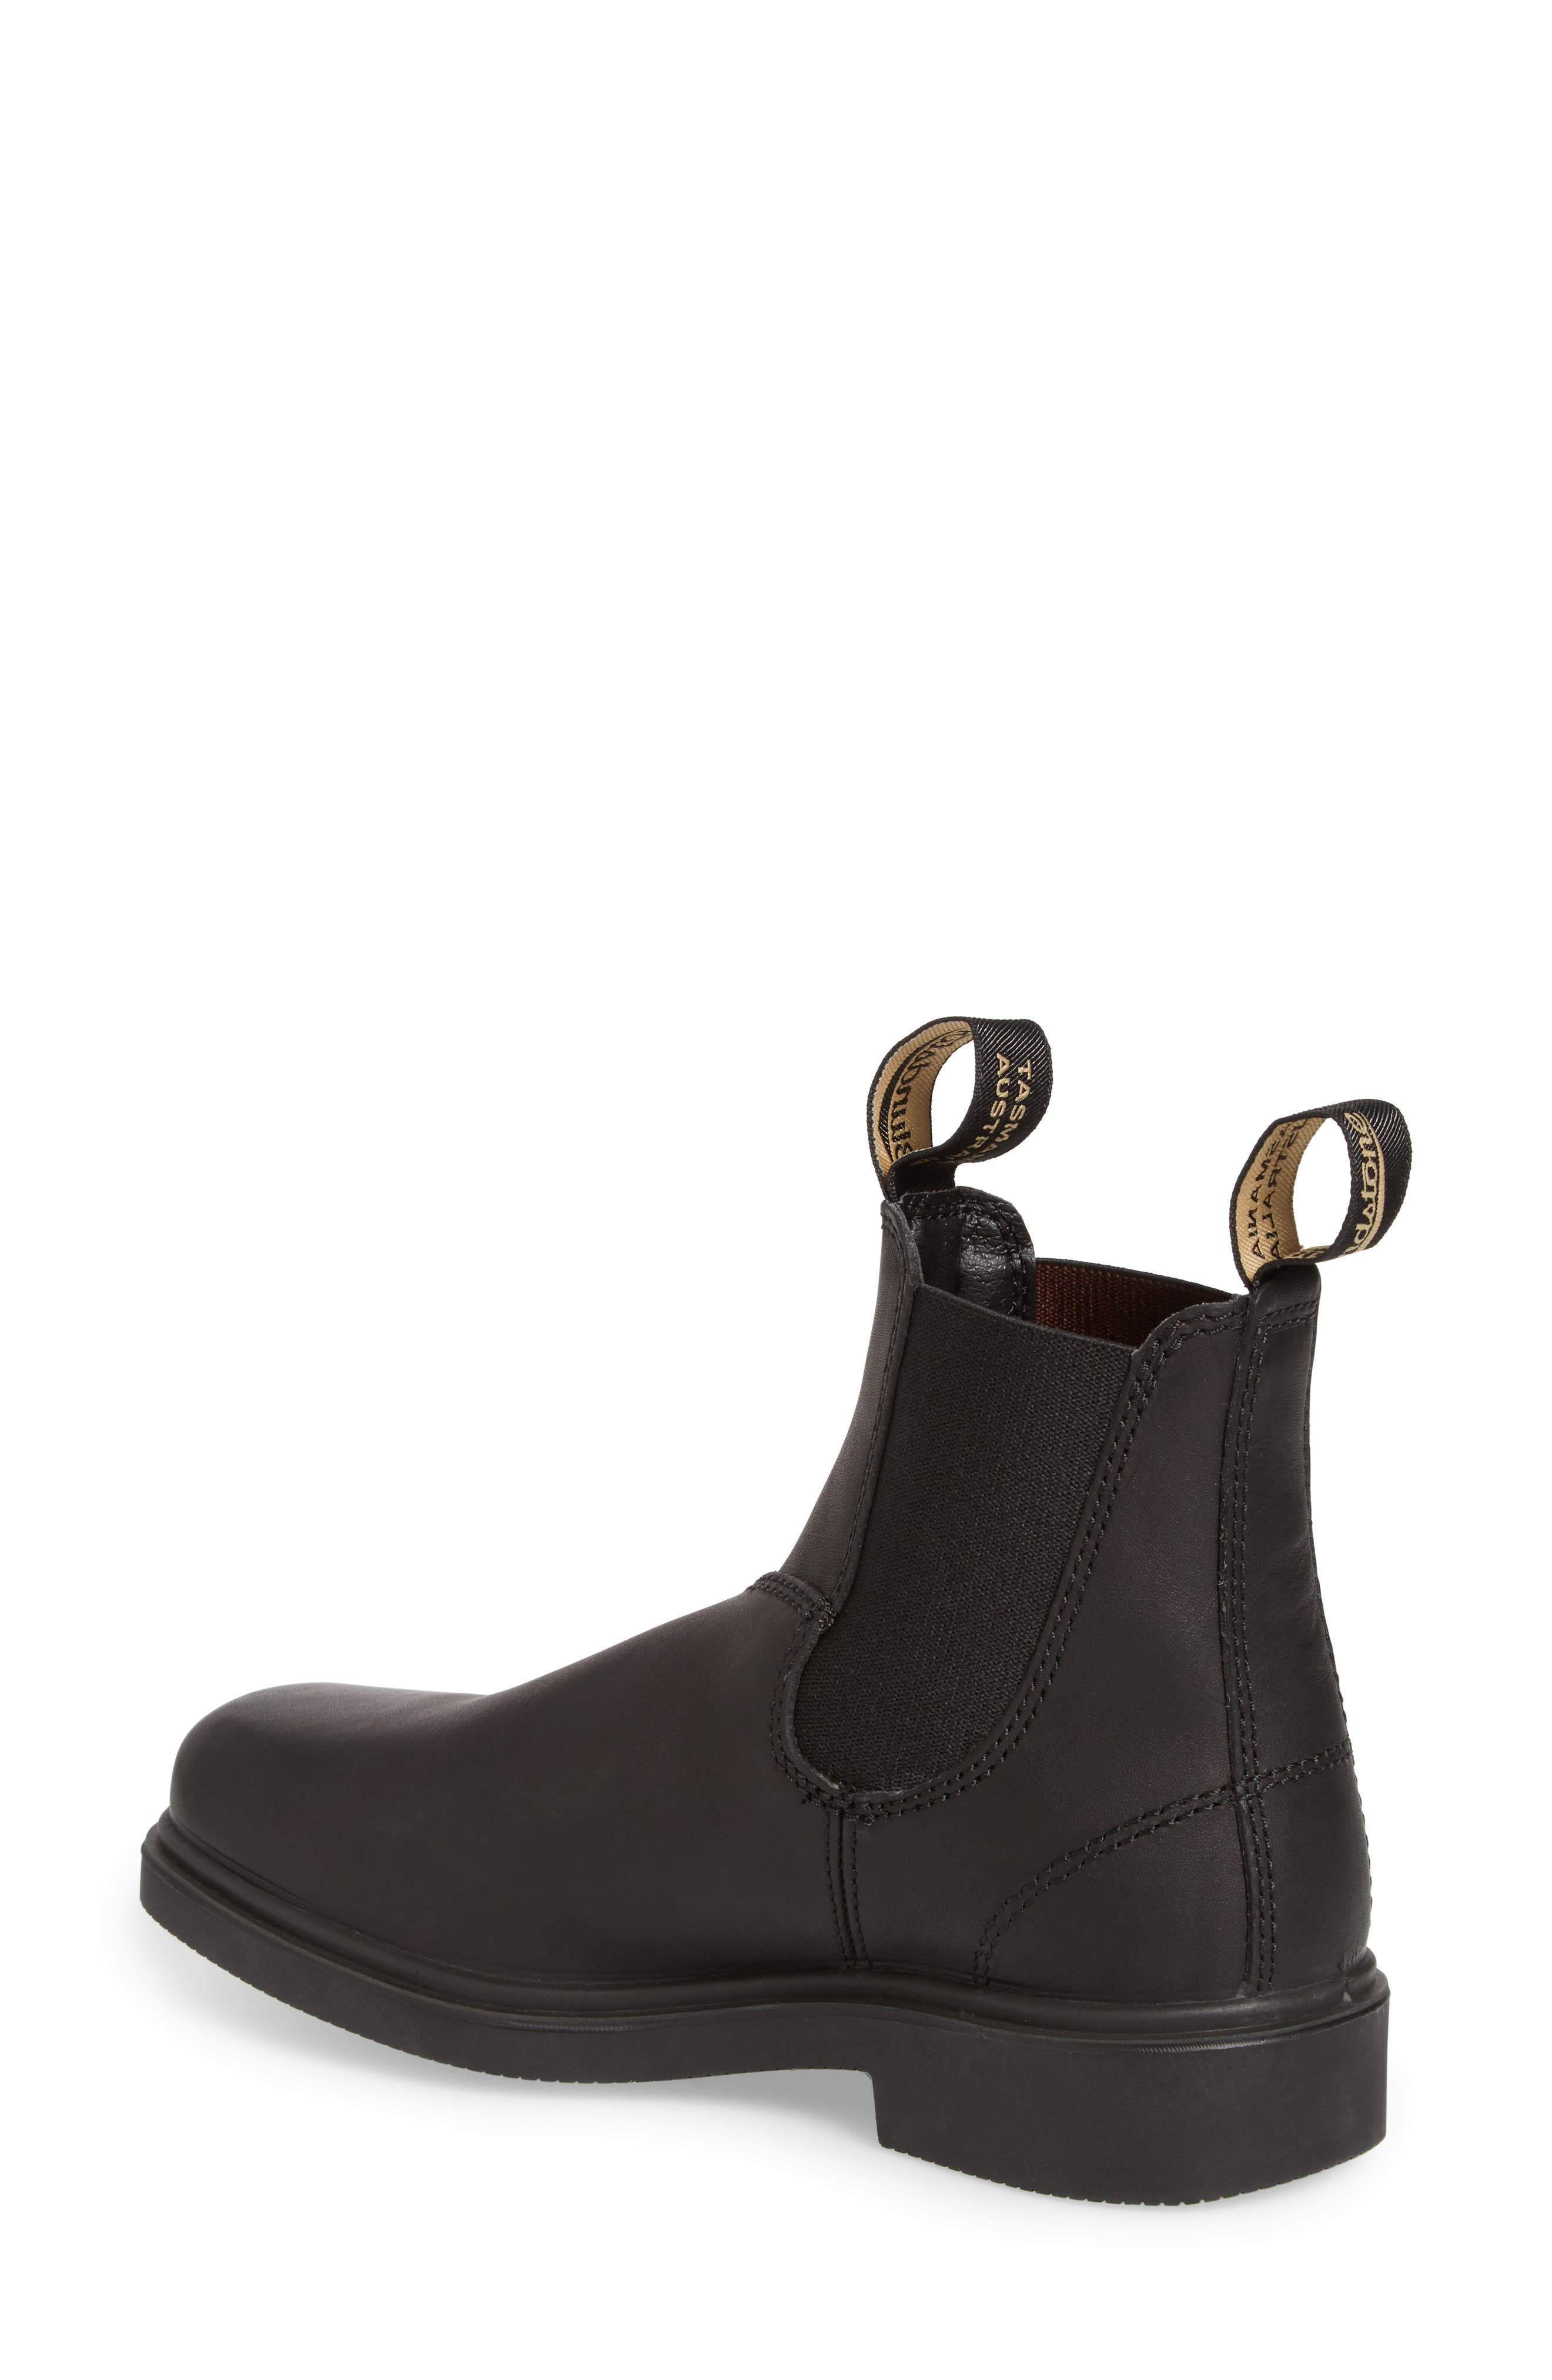 BLUNDSTONE FOOTWEAR,                             Chelsea Boot,                             Alternate thumbnail 2, color,                             BLACK LEATHER